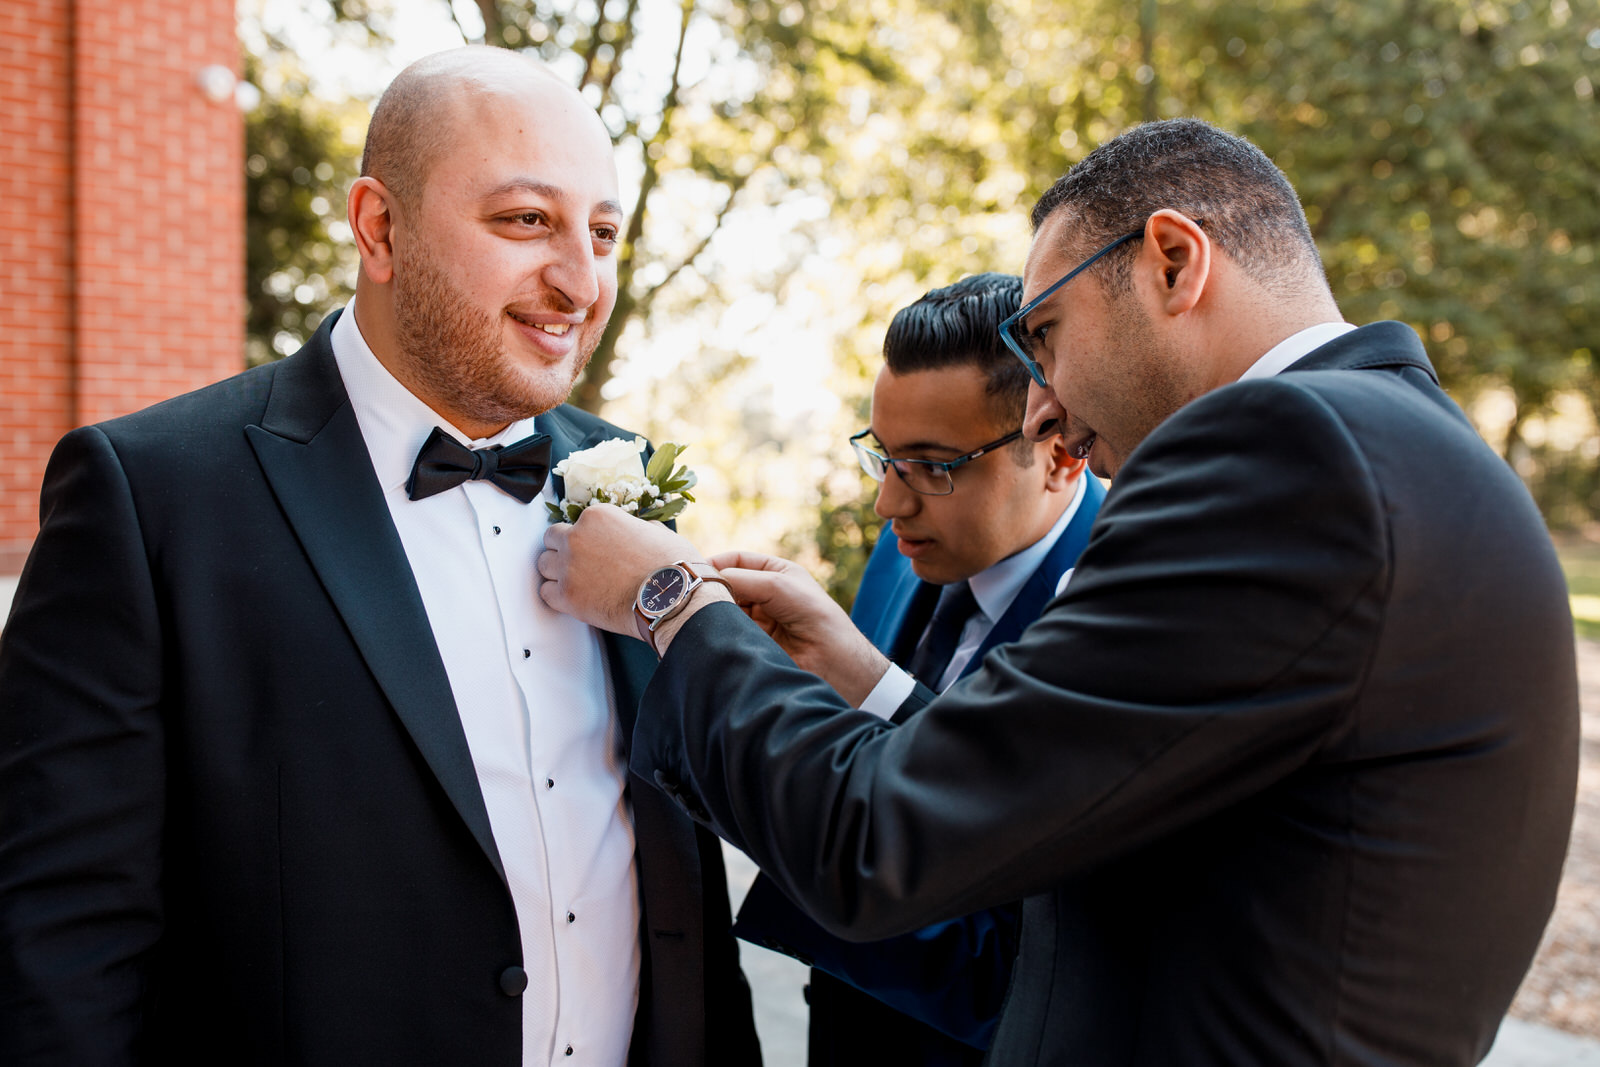 groom having flower pinned to lapel